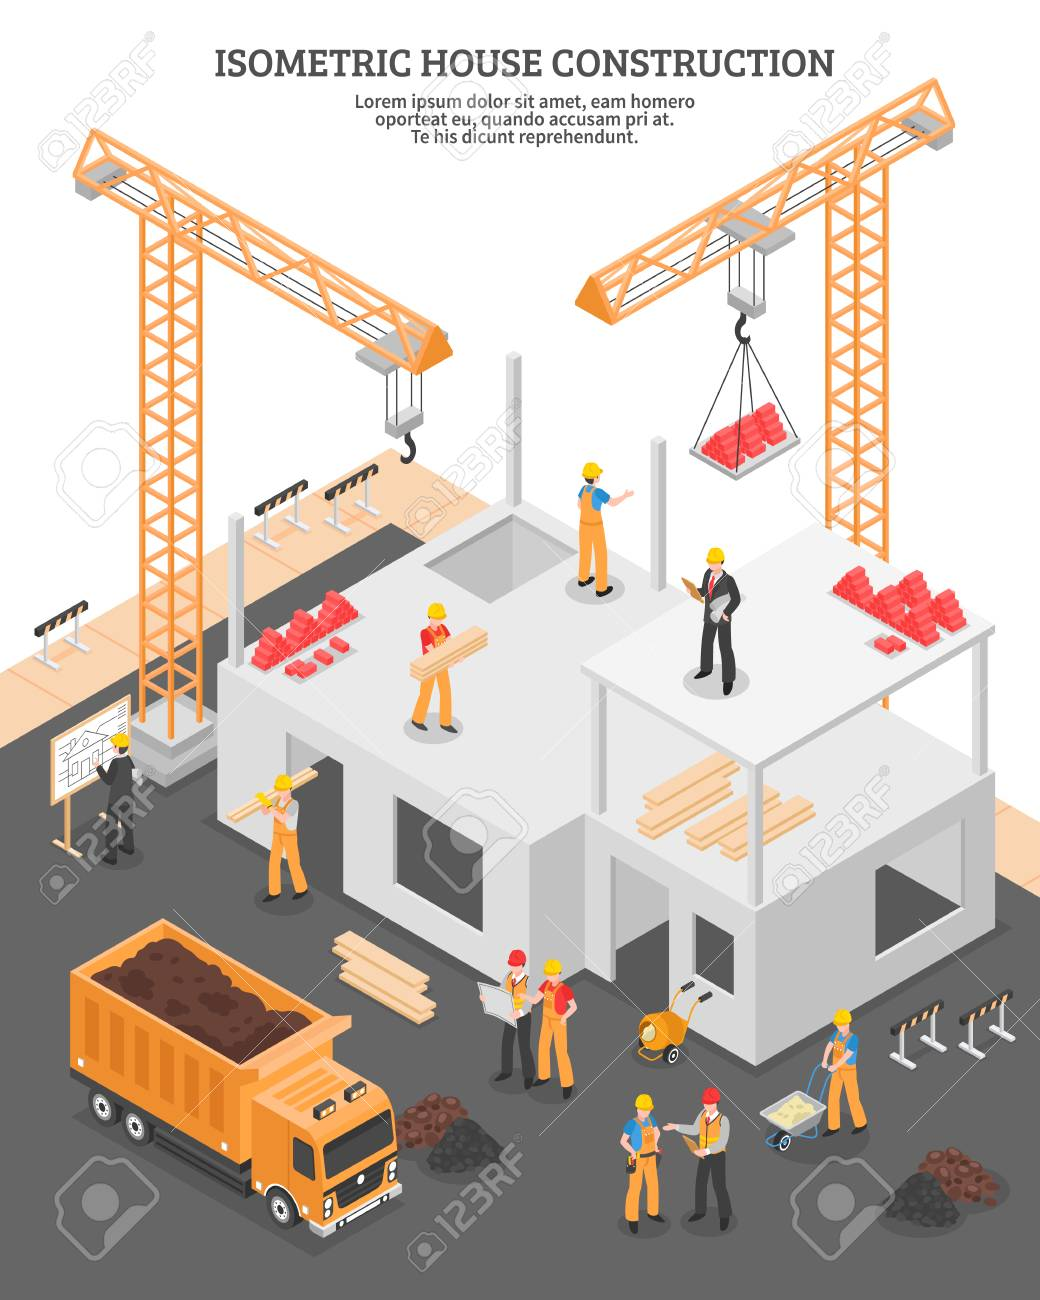 Isometric Building Composition With View Of Construction Site